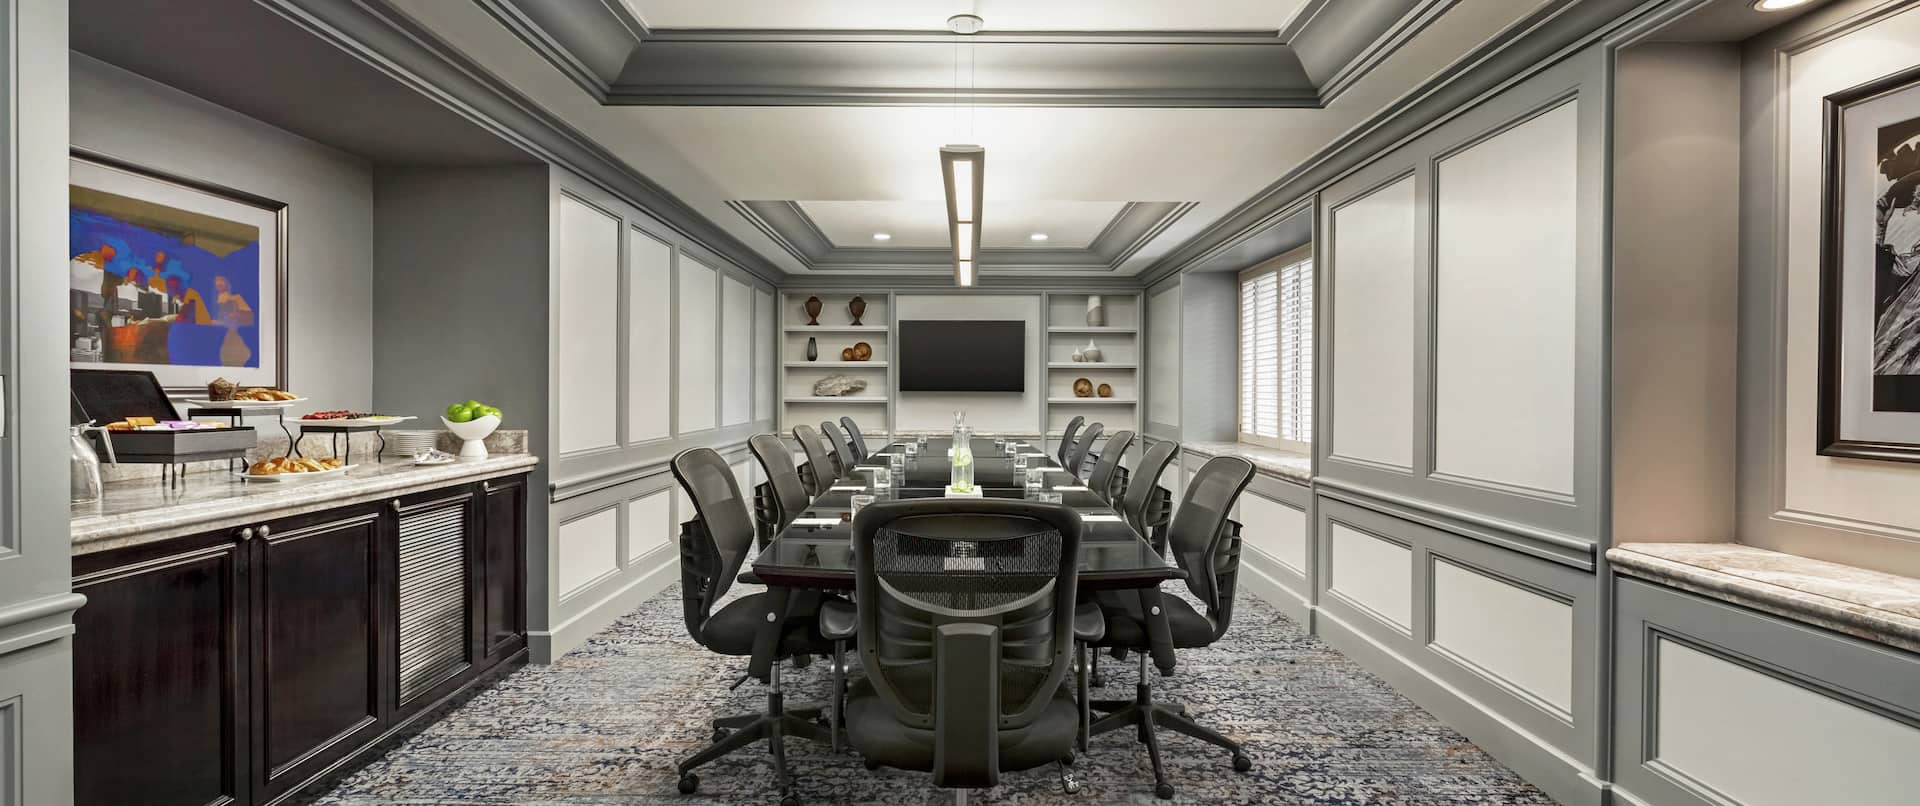 Hilton Boardroom with Table, Chairs, and HDTV